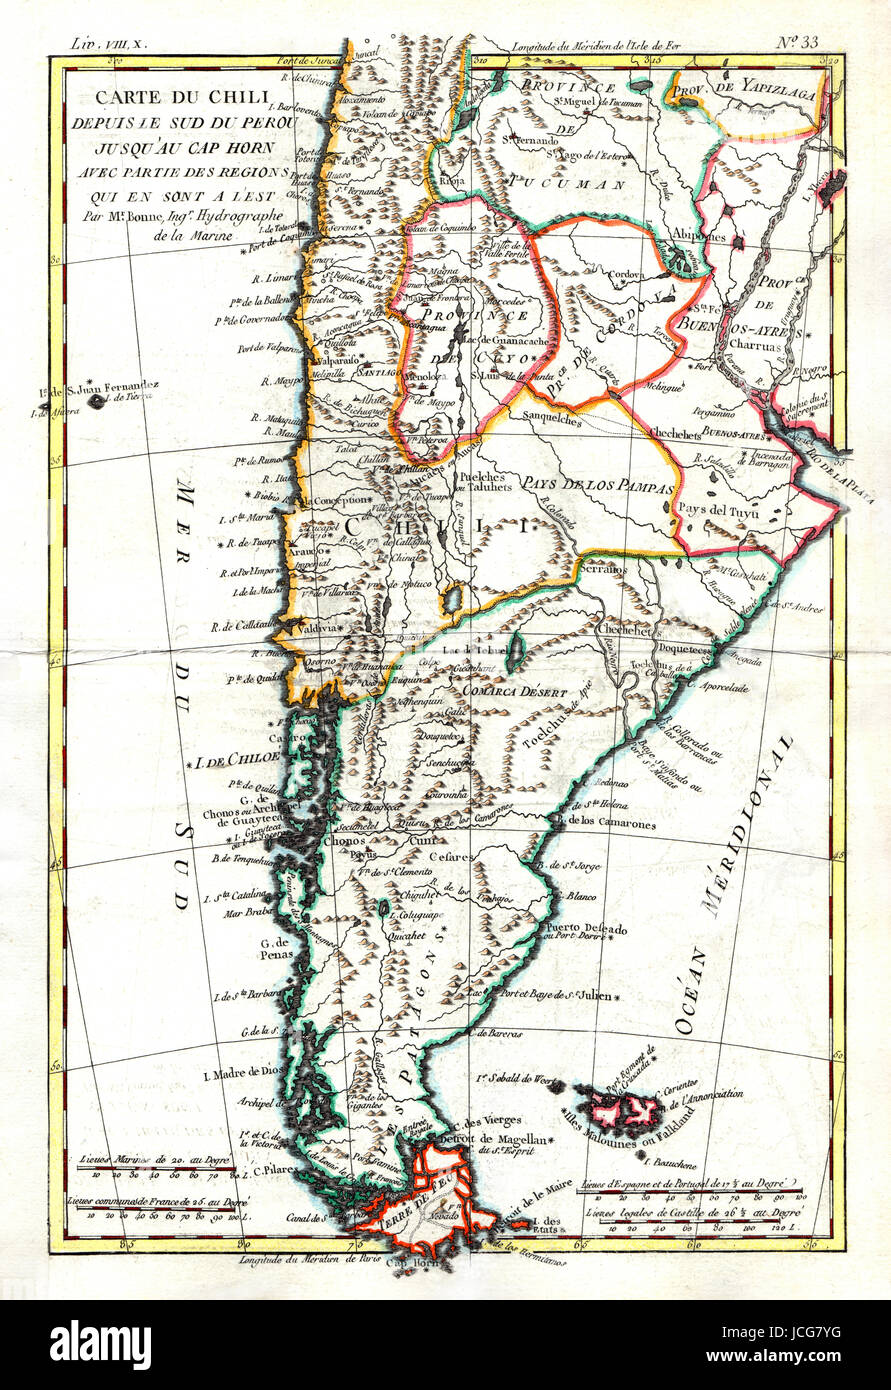 Colonial South America Map.1779 Bonne Map Of The Southern Cone Of South America Showing Stock